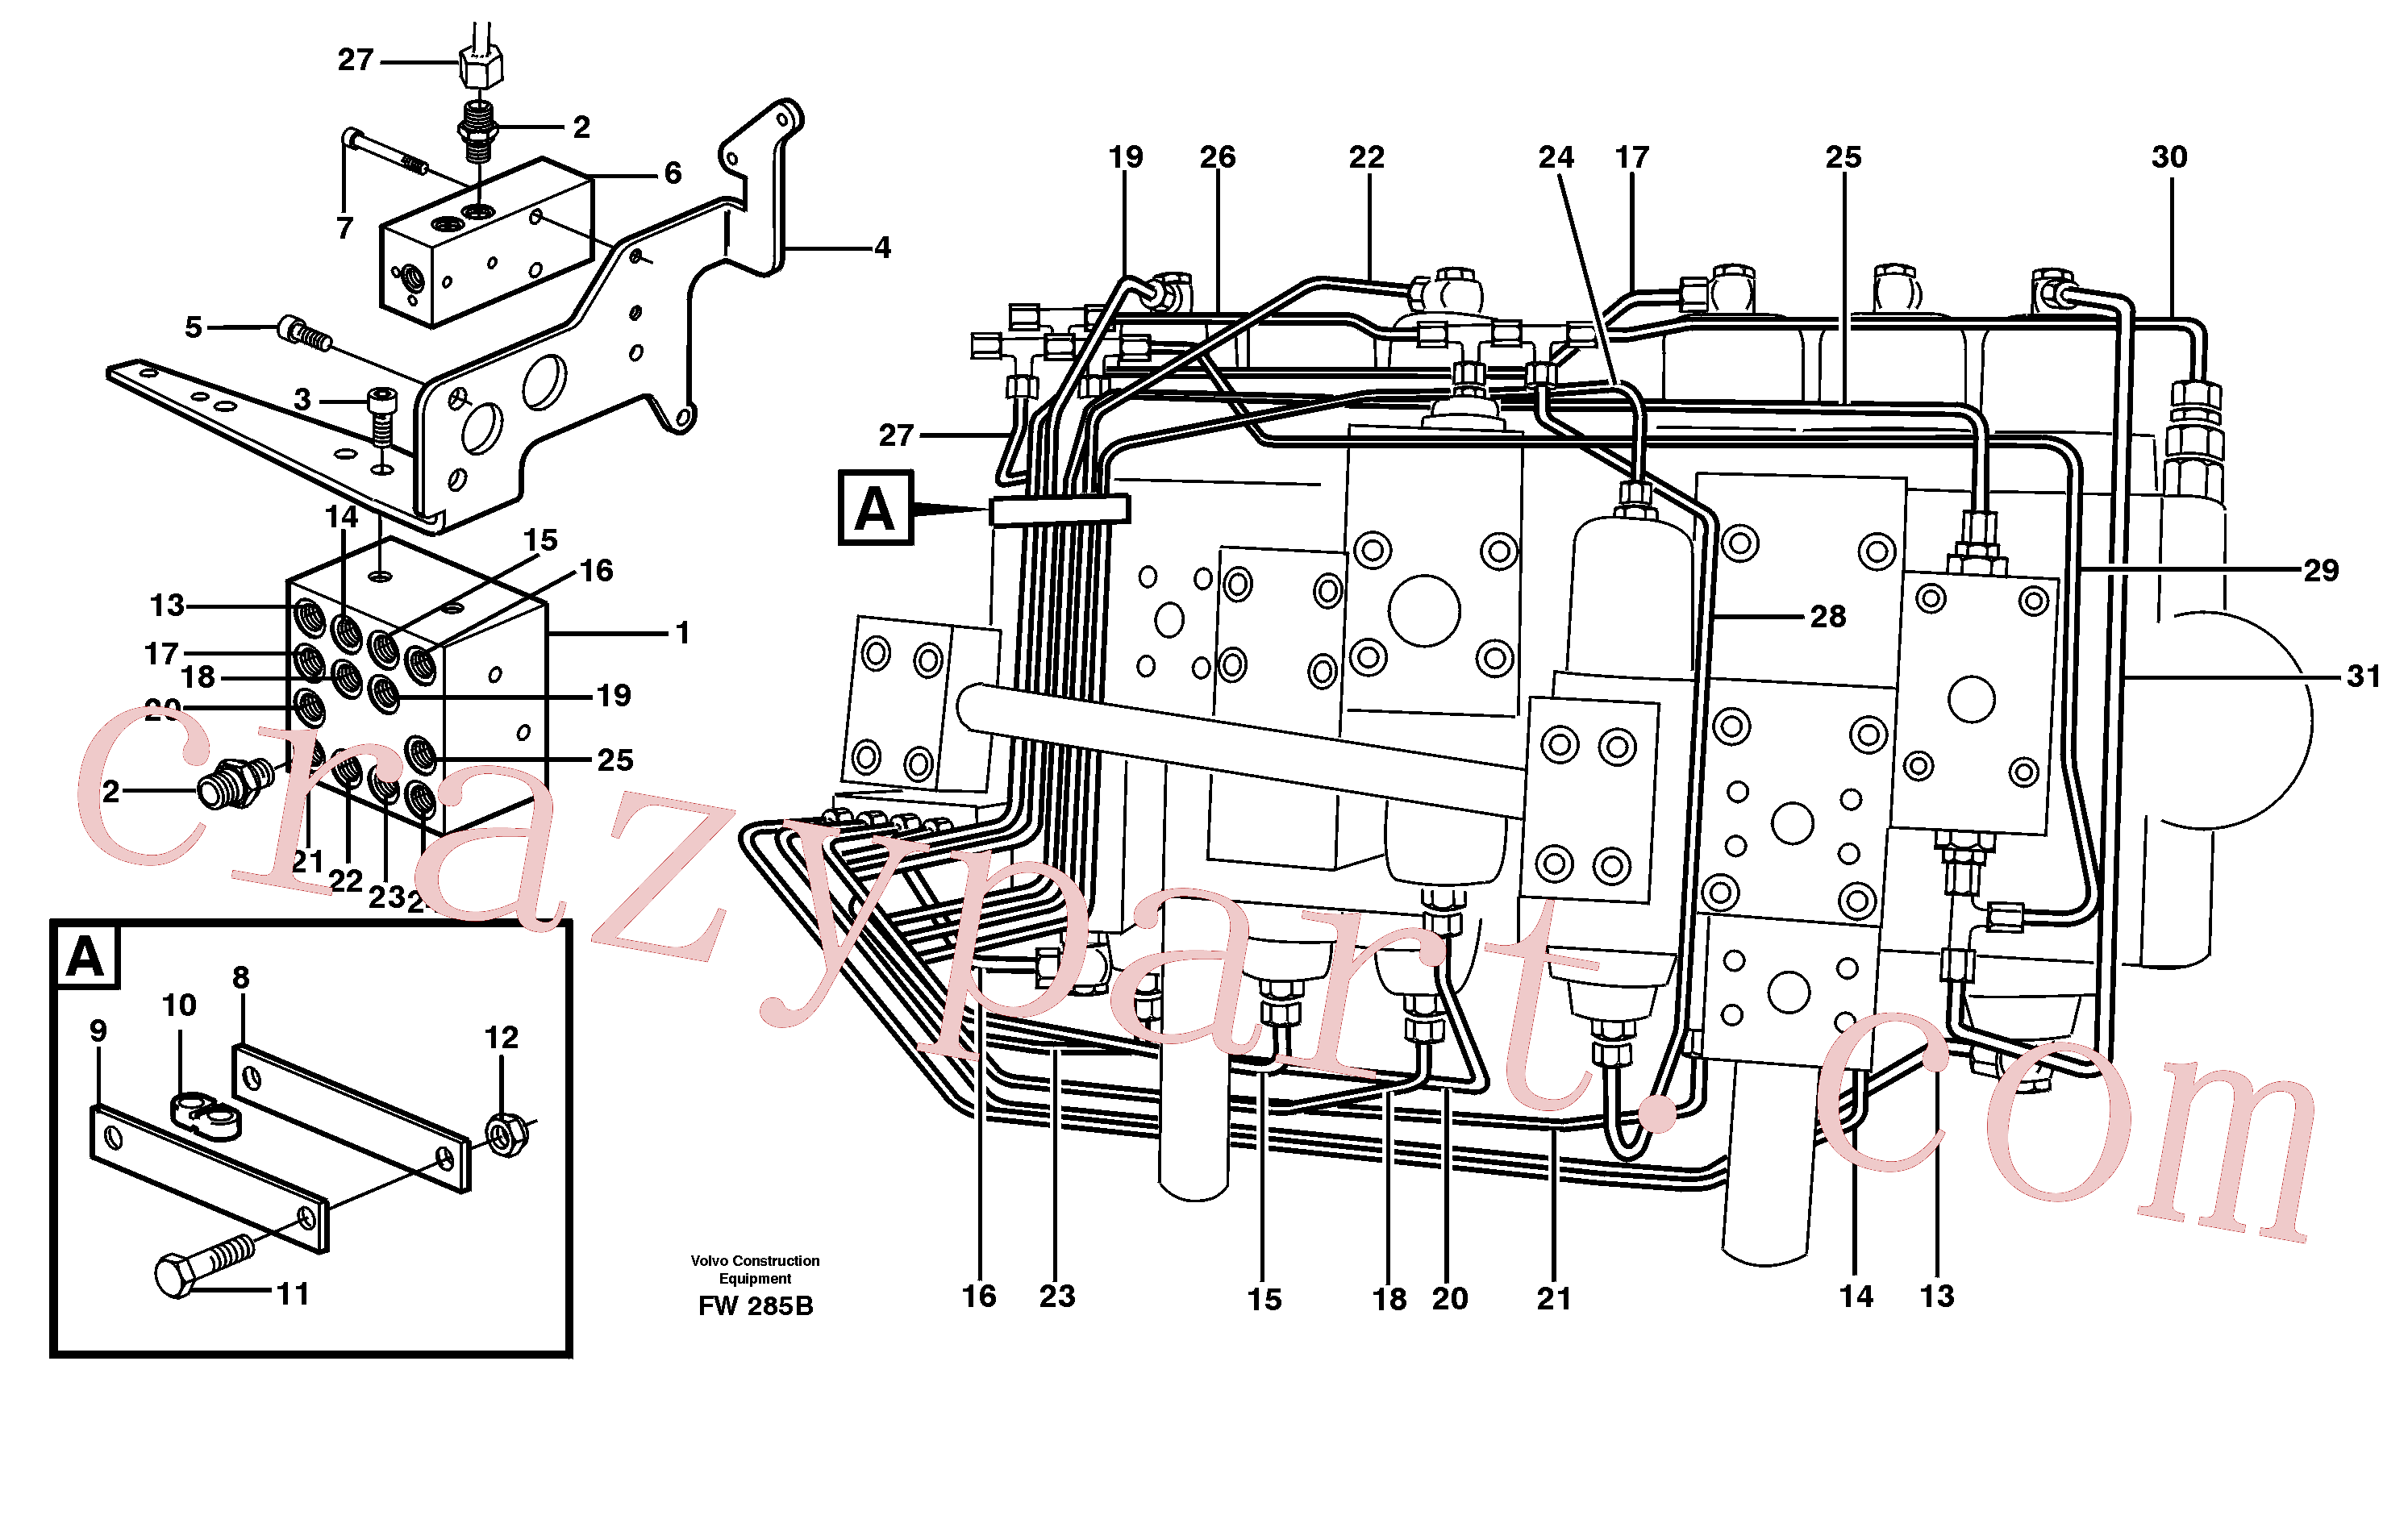 VOE14344897 for Volvo Main valve assembly, tubes connections(FW285B assembly)